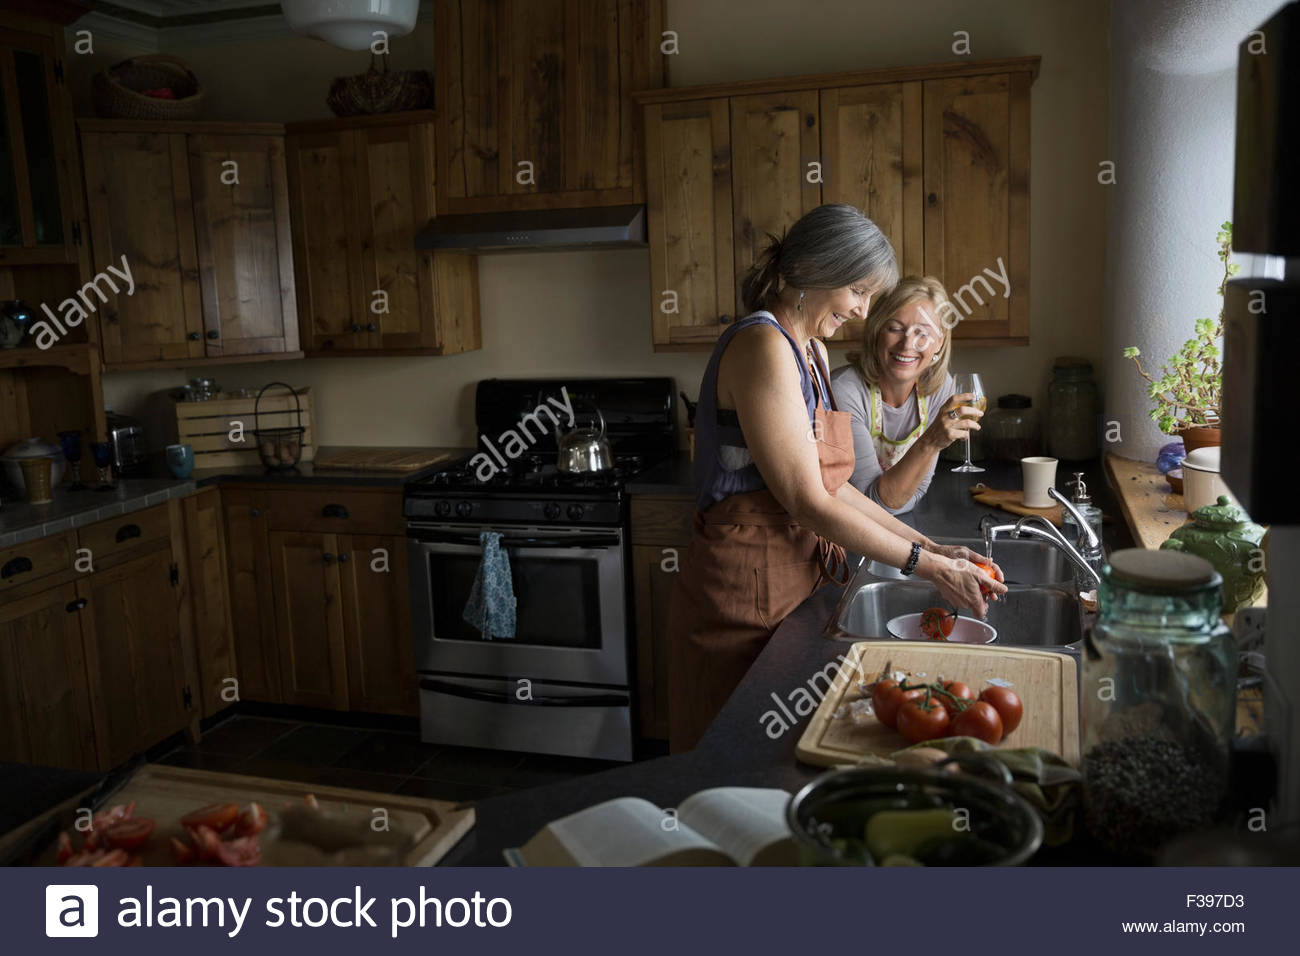 Women cooking and drinking wine in kitchen - Stock Image